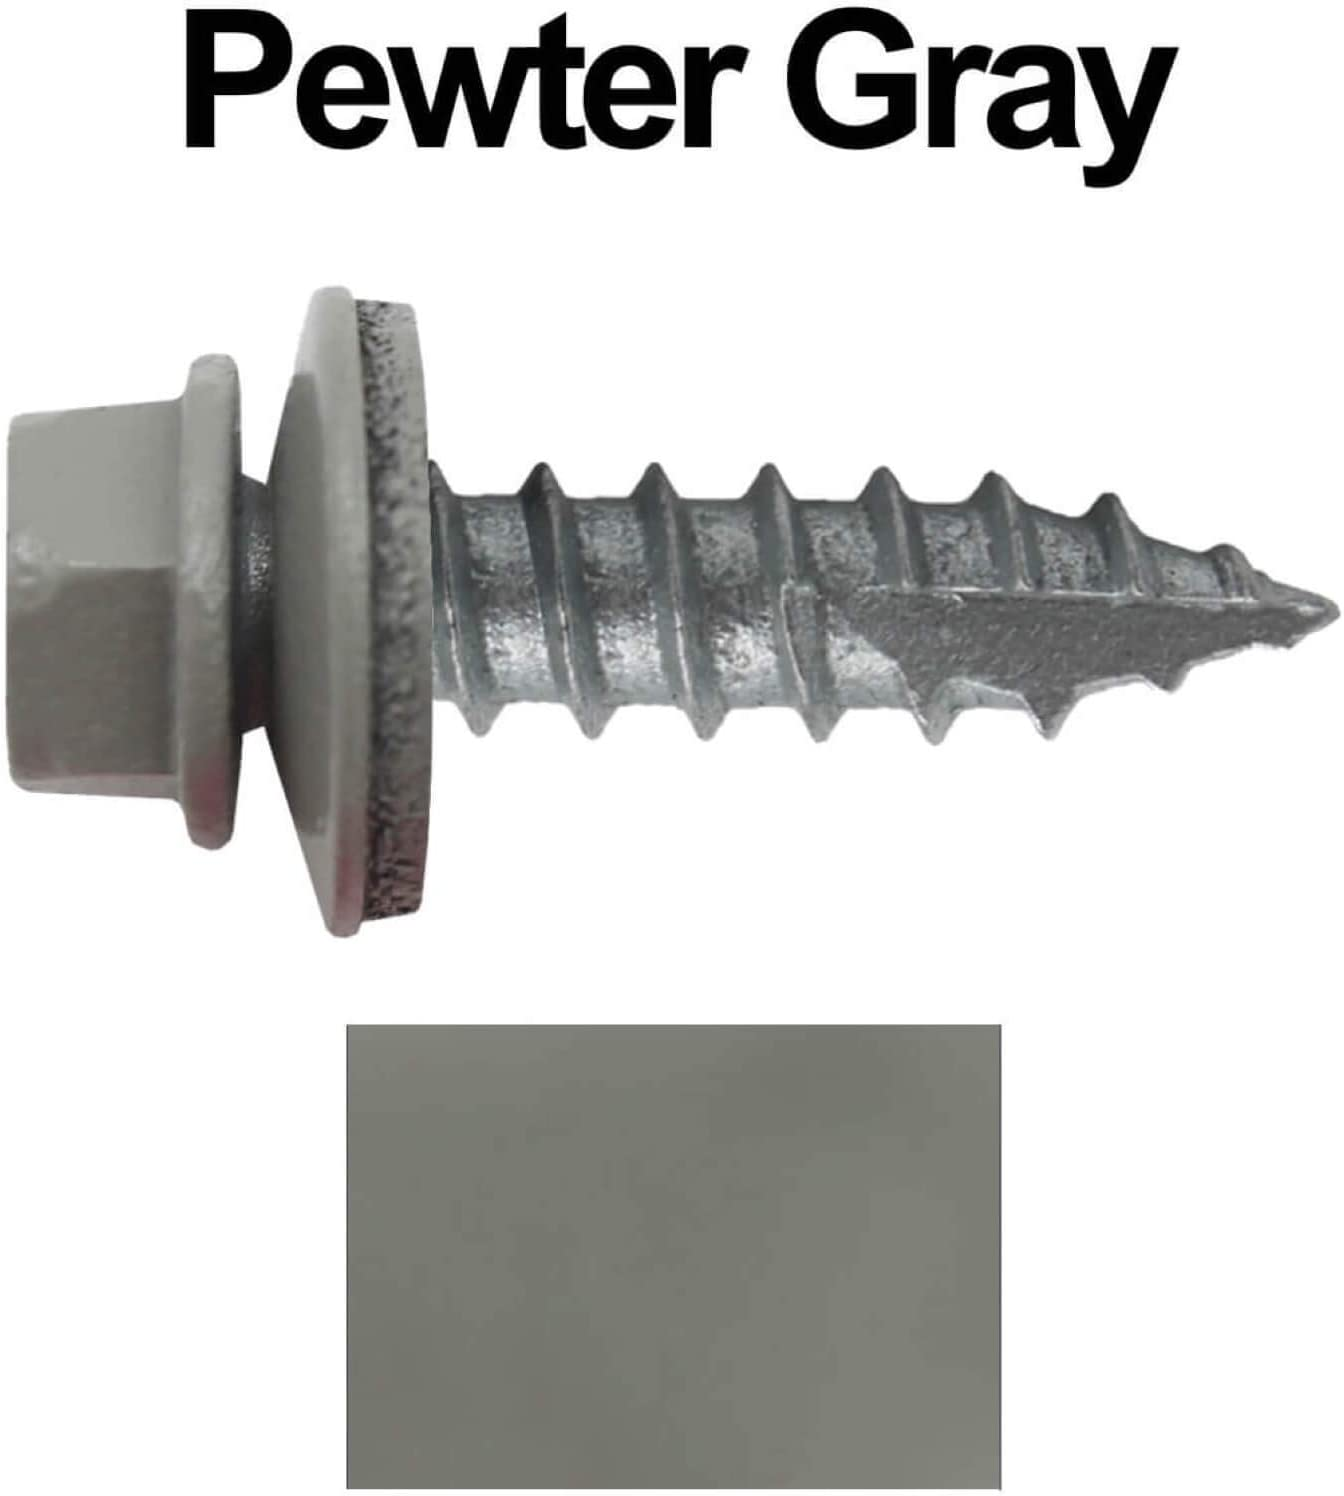 250 #14 Metal Roofing Screws: Self Starting//Tapping Metal to woodsheet Metal Screws with EPDM Washer Screws x 1 Dark Brown Hex Head Sheet Metal Roof Screw for Corrugated Roofing